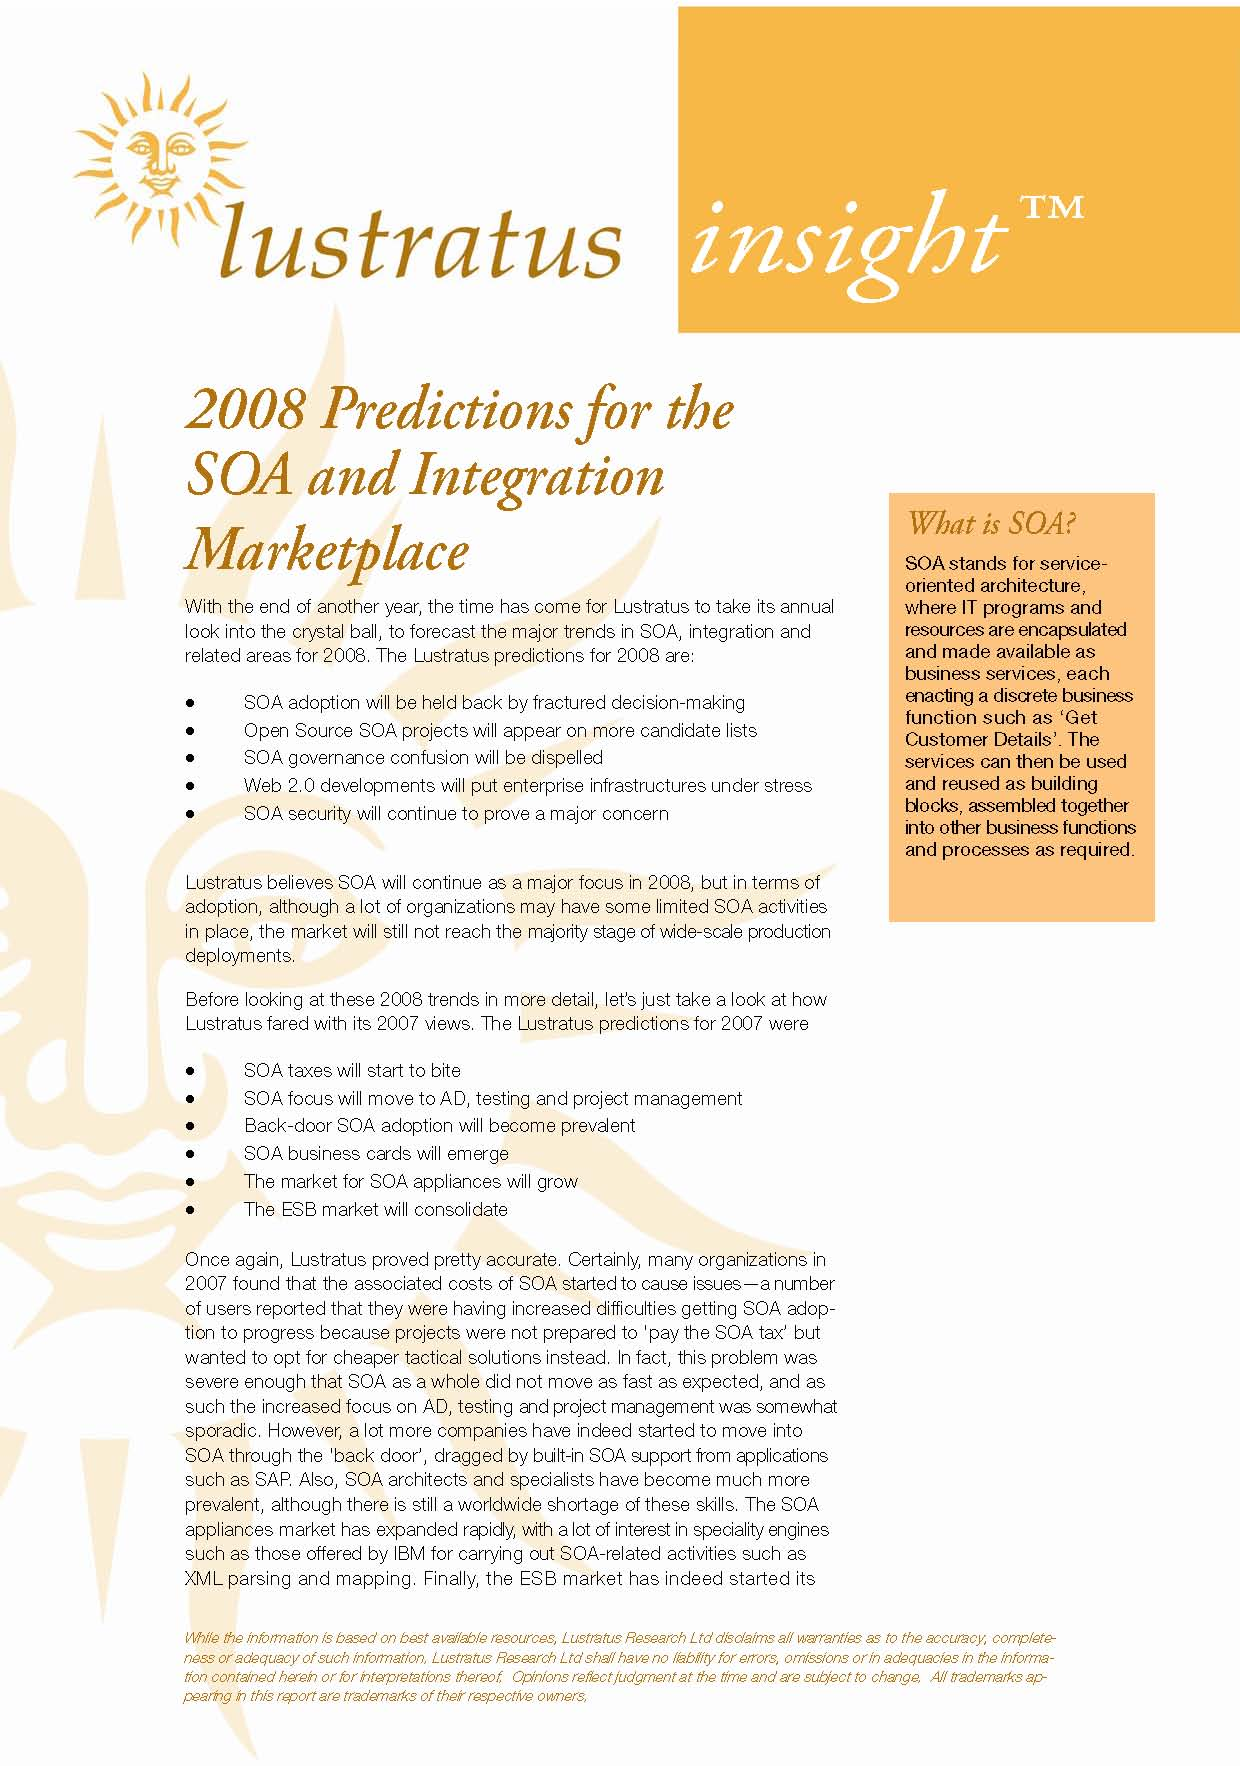 Pages from 2008 Predictions for the SOA and Integration Marketplace